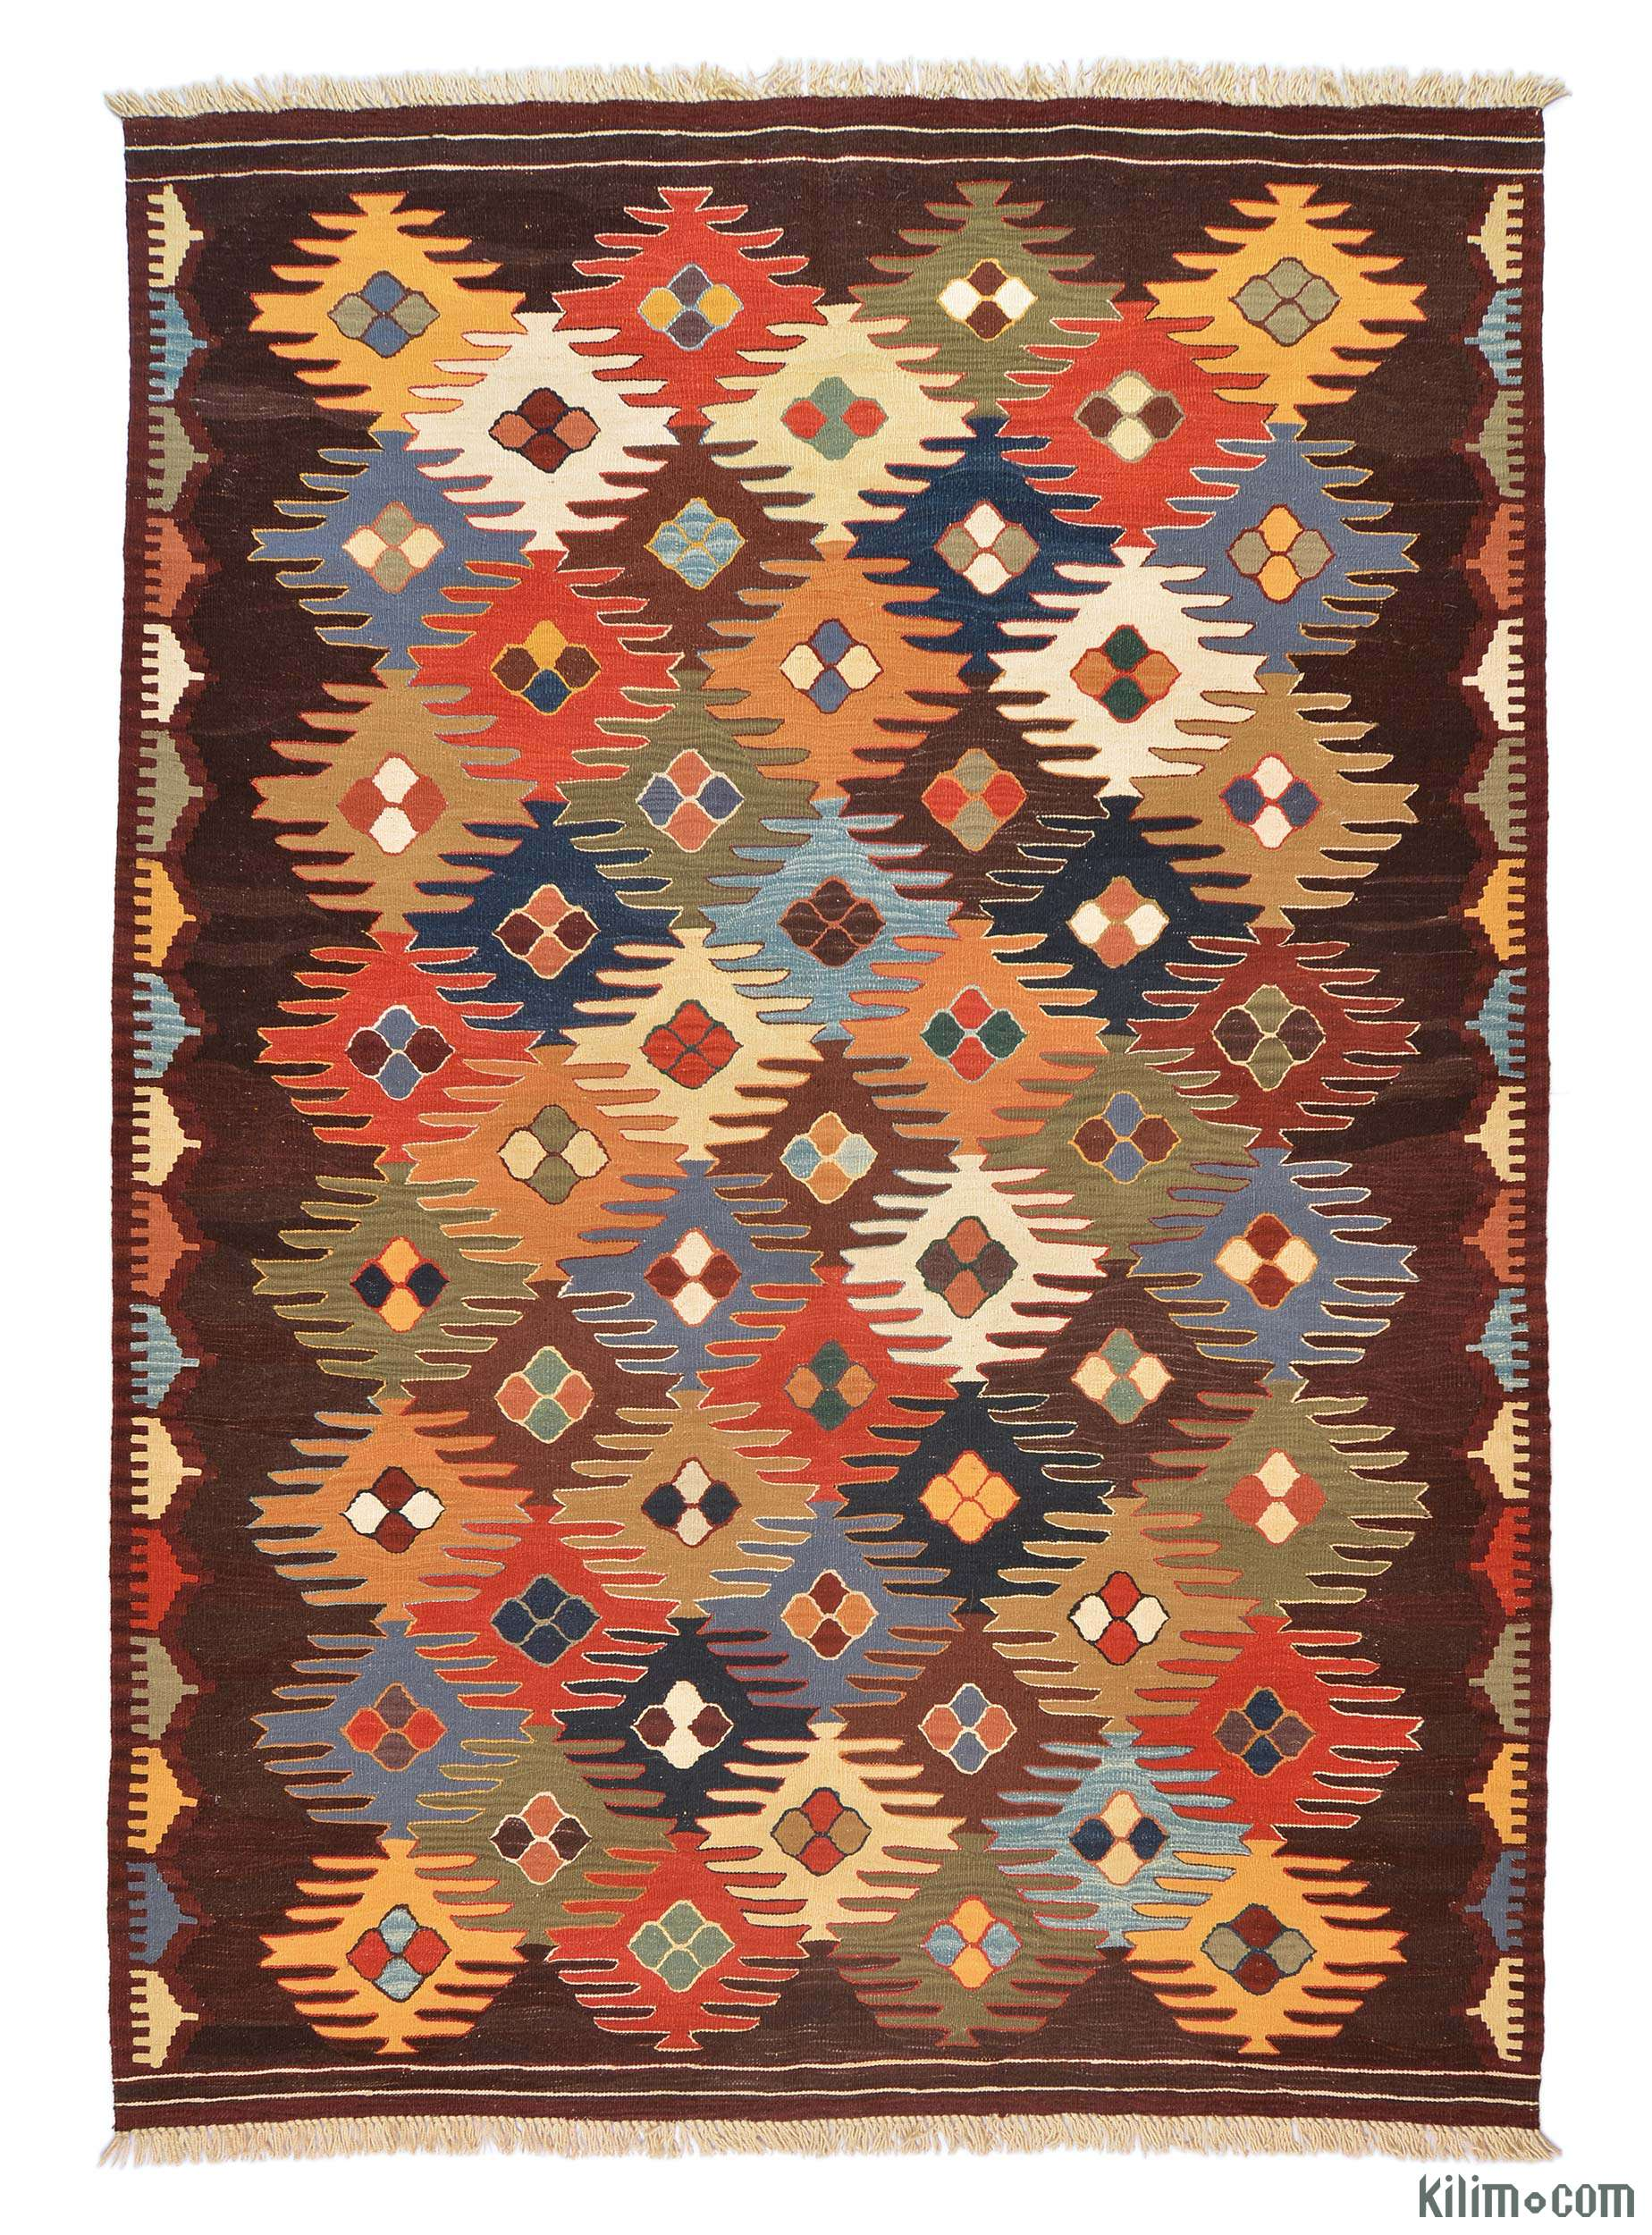 k0005789 multicolor new turkish kilim rug. Black Bedroom Furniture Sets. Home Design Ideas